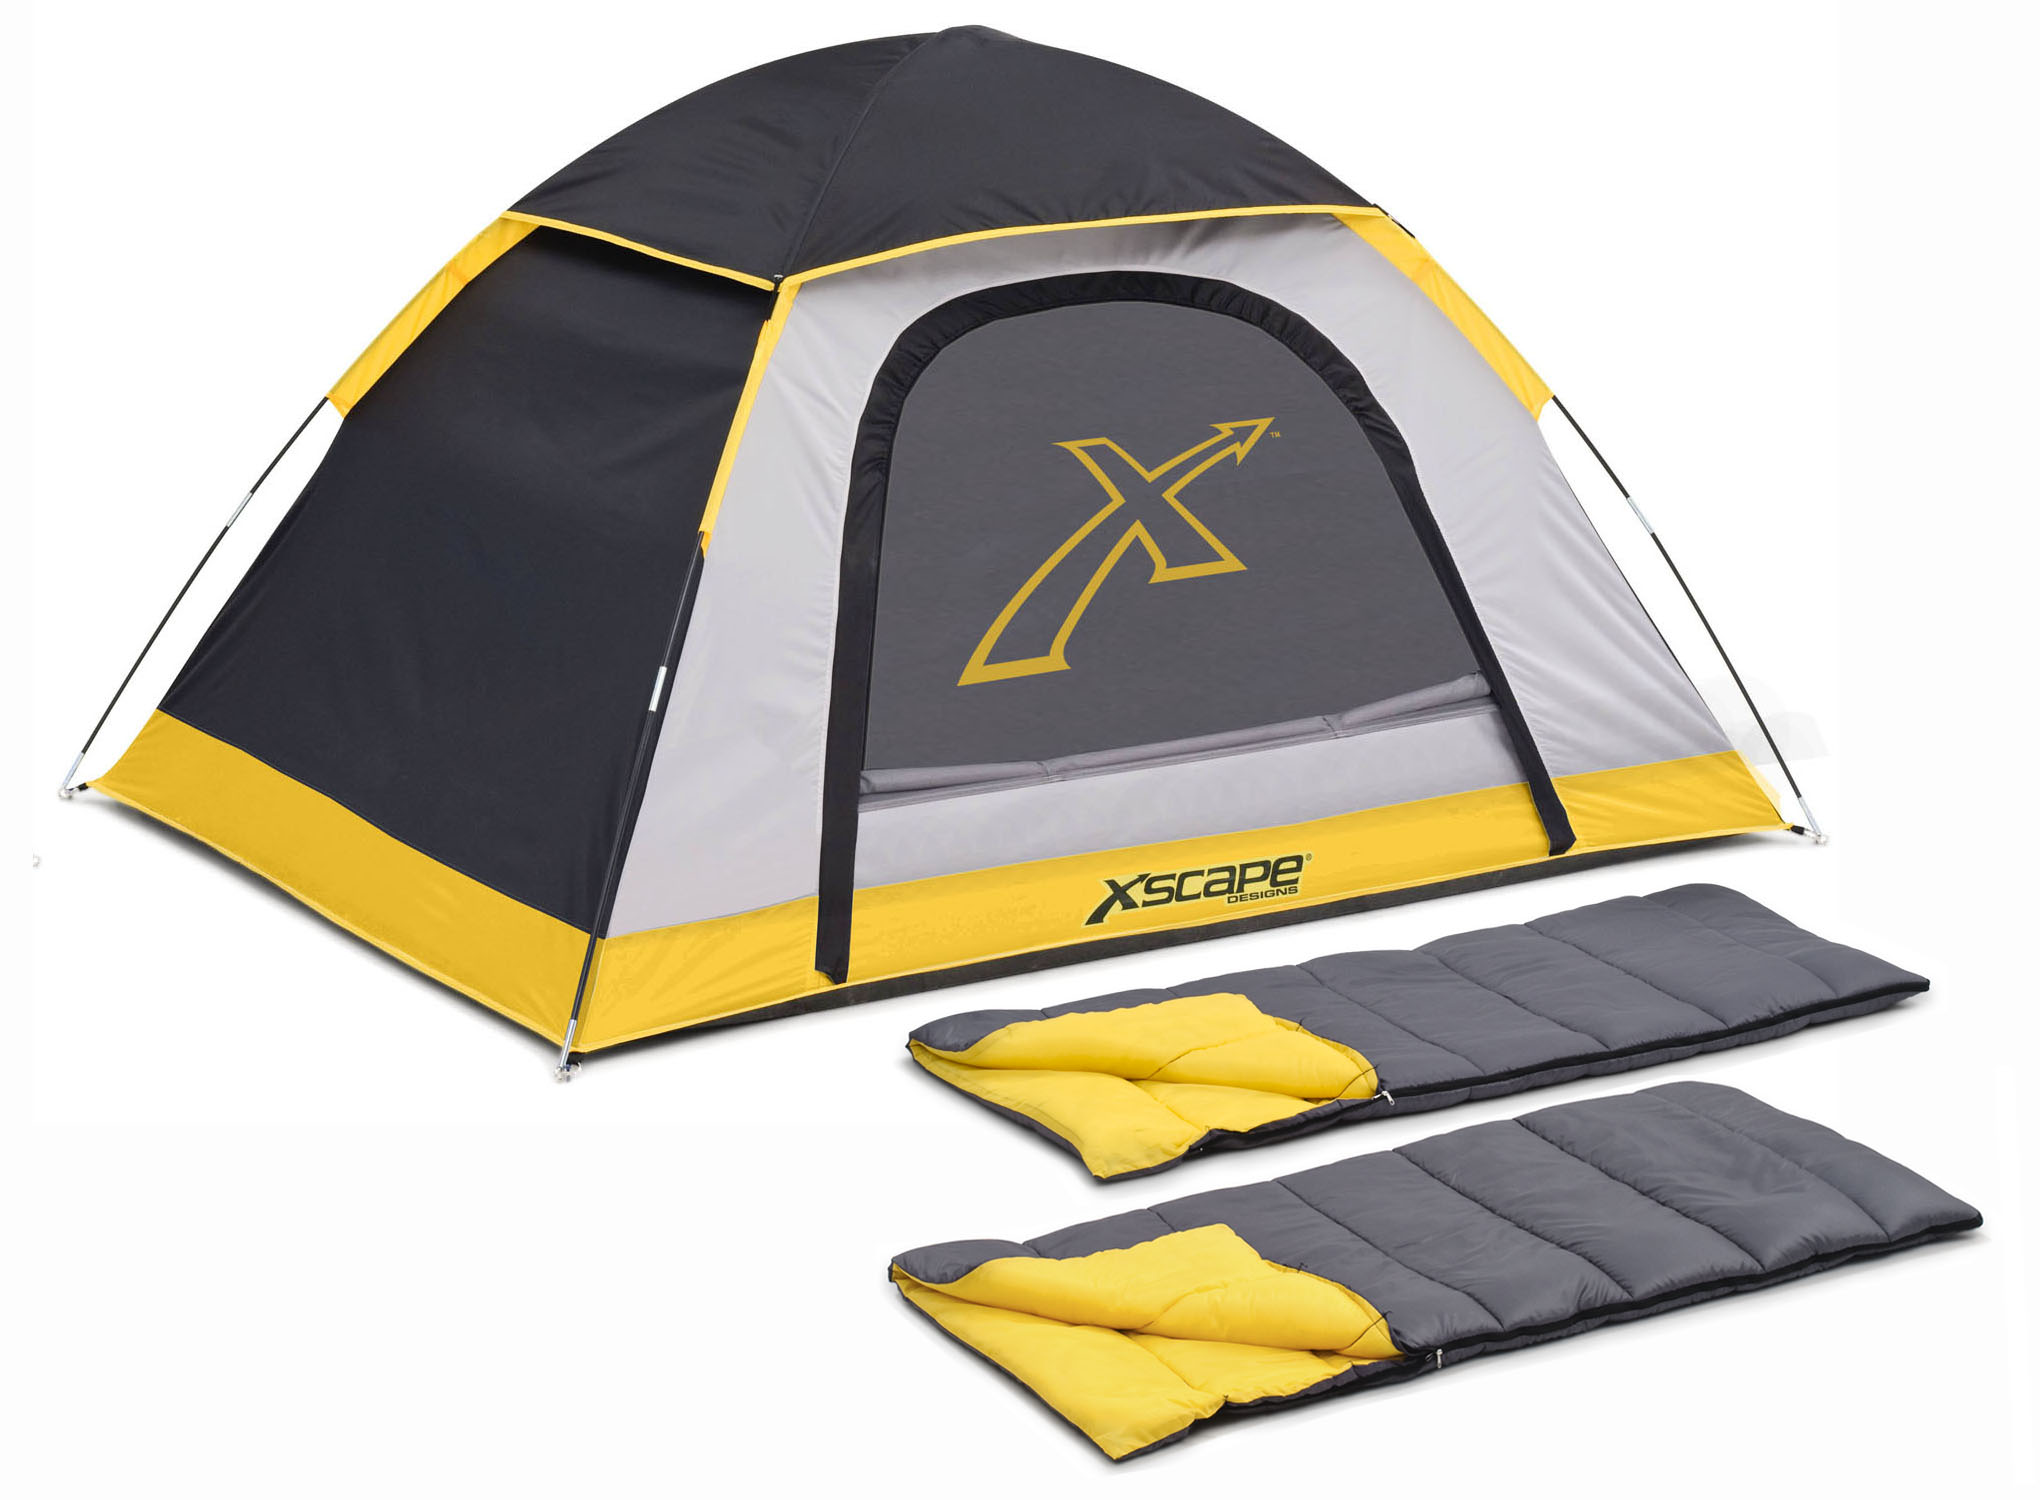 Xscape Designs Explorer 2 Person Dome Tent u0026 Sleeping Bag Combo  sc 1 st  C&ing Gear Outlet & Designs Explorer 2 Person Dome Tent u0026 Sleeping Bag Combo